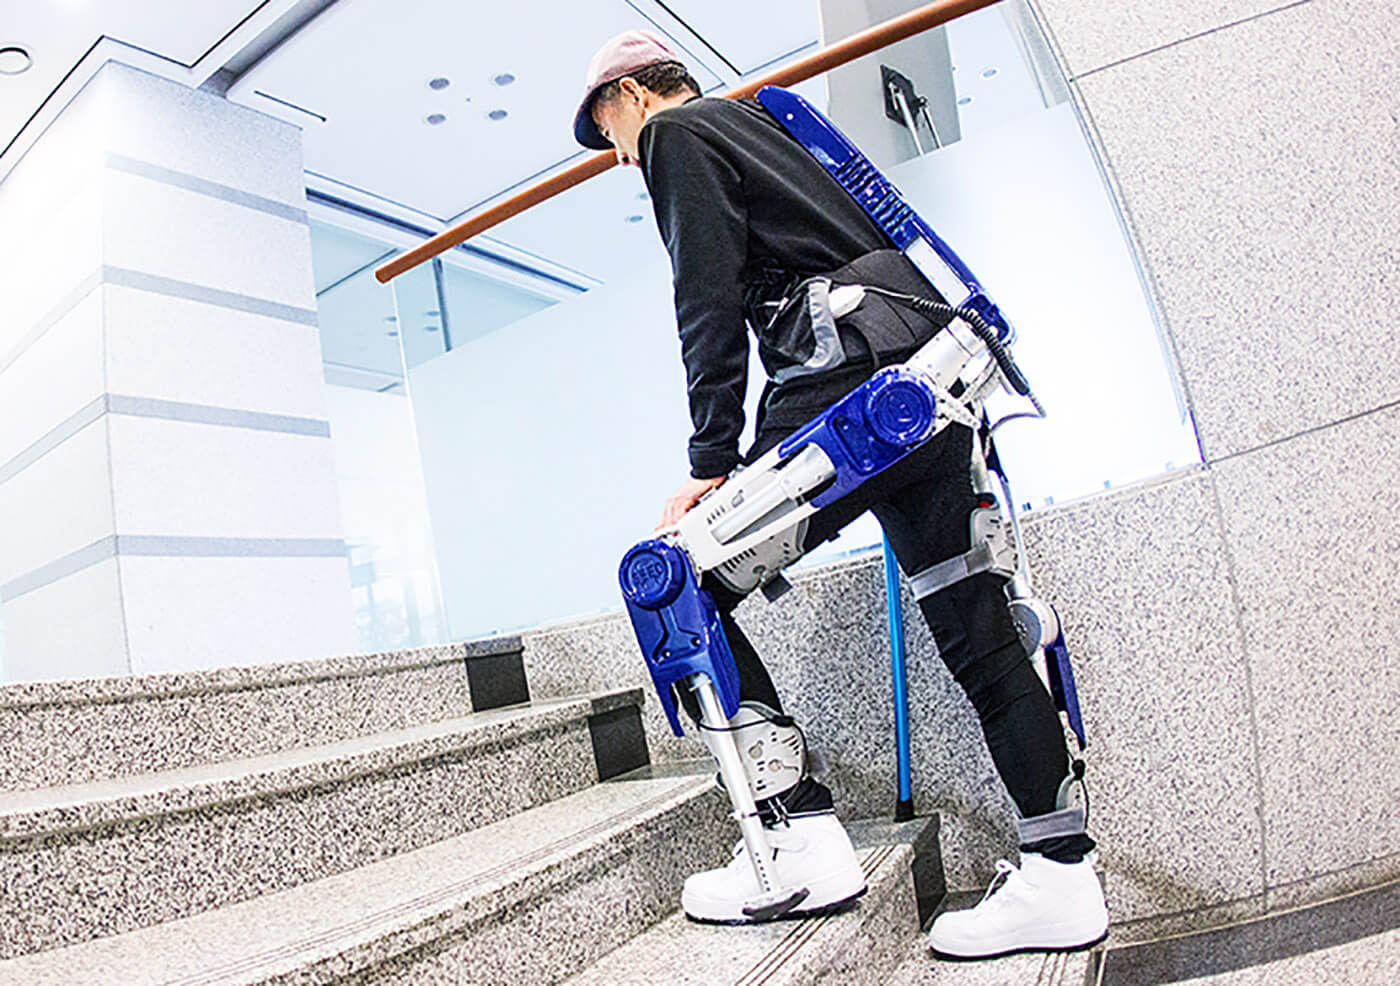 hyundai-wearable-robot-2016-05-13-04